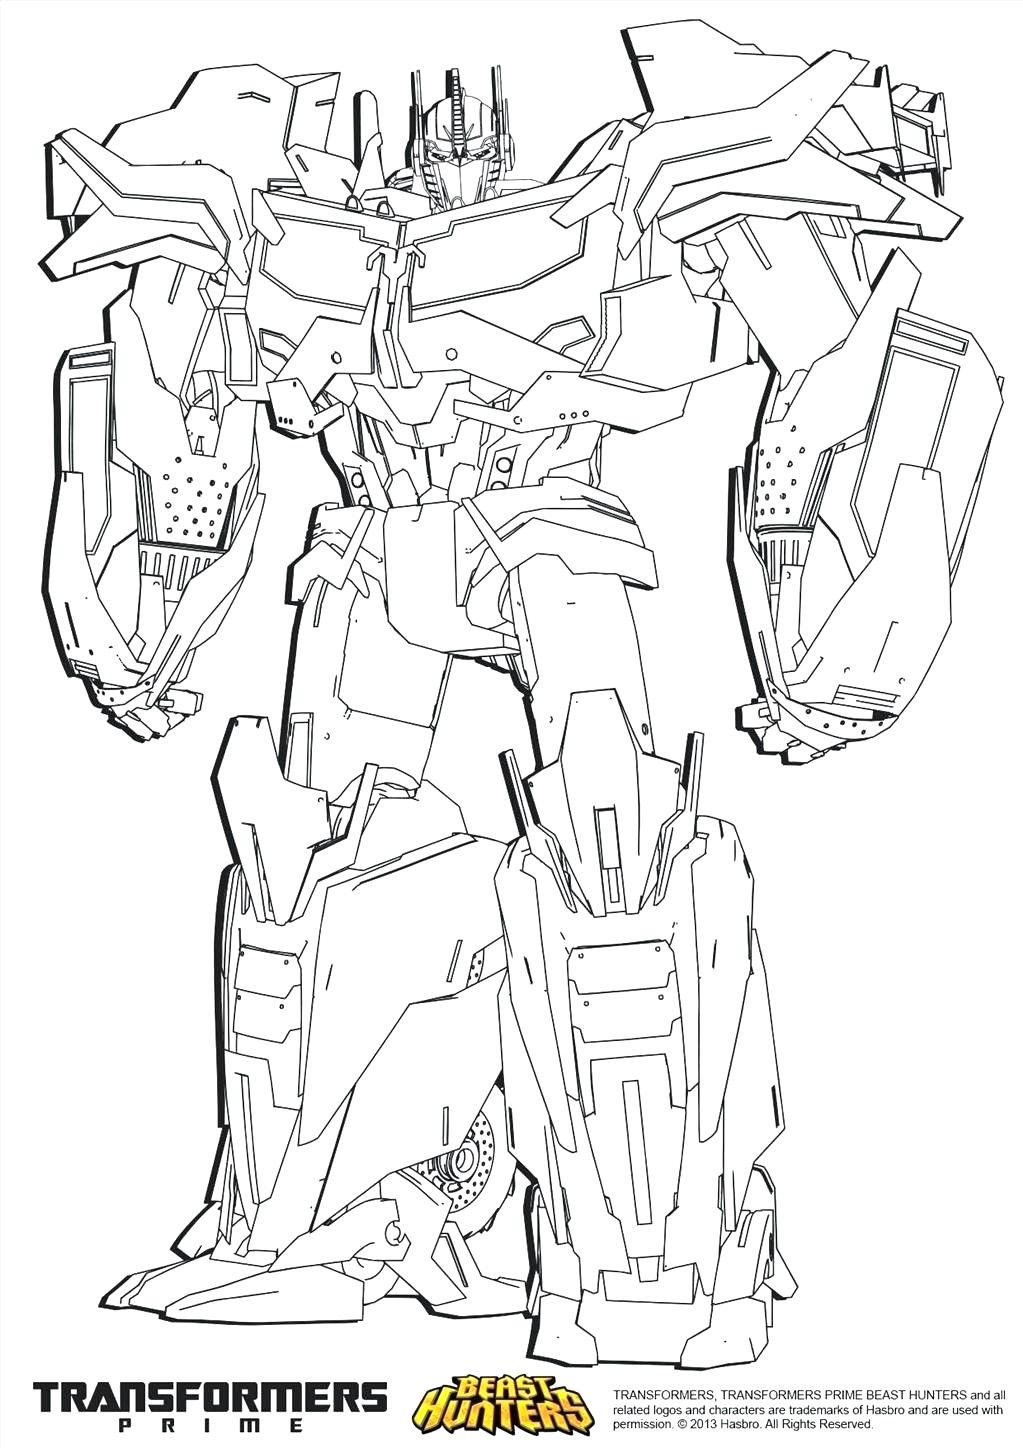 Free Prime Coloring Pages To Print Truck Page Printable Optimus Vs Megatron Transformers Transformers Prime Transformers Coloring Pages Optimus Prime Wallpaper